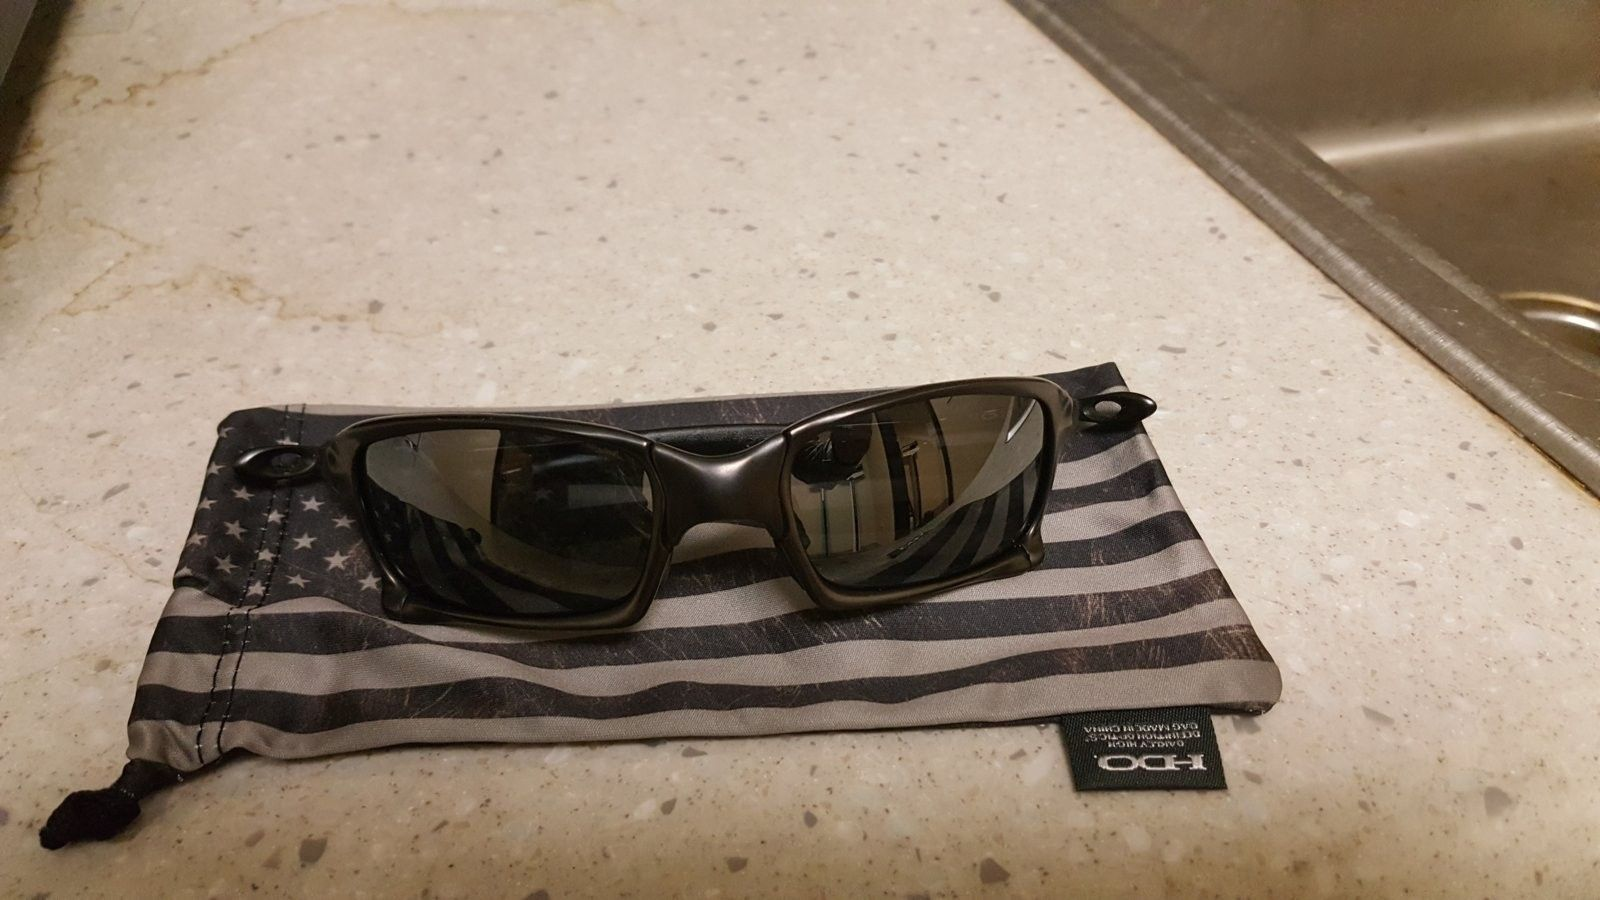 Carbon xs $330 / will trade for PB 1 - 20160413_082955.jpg